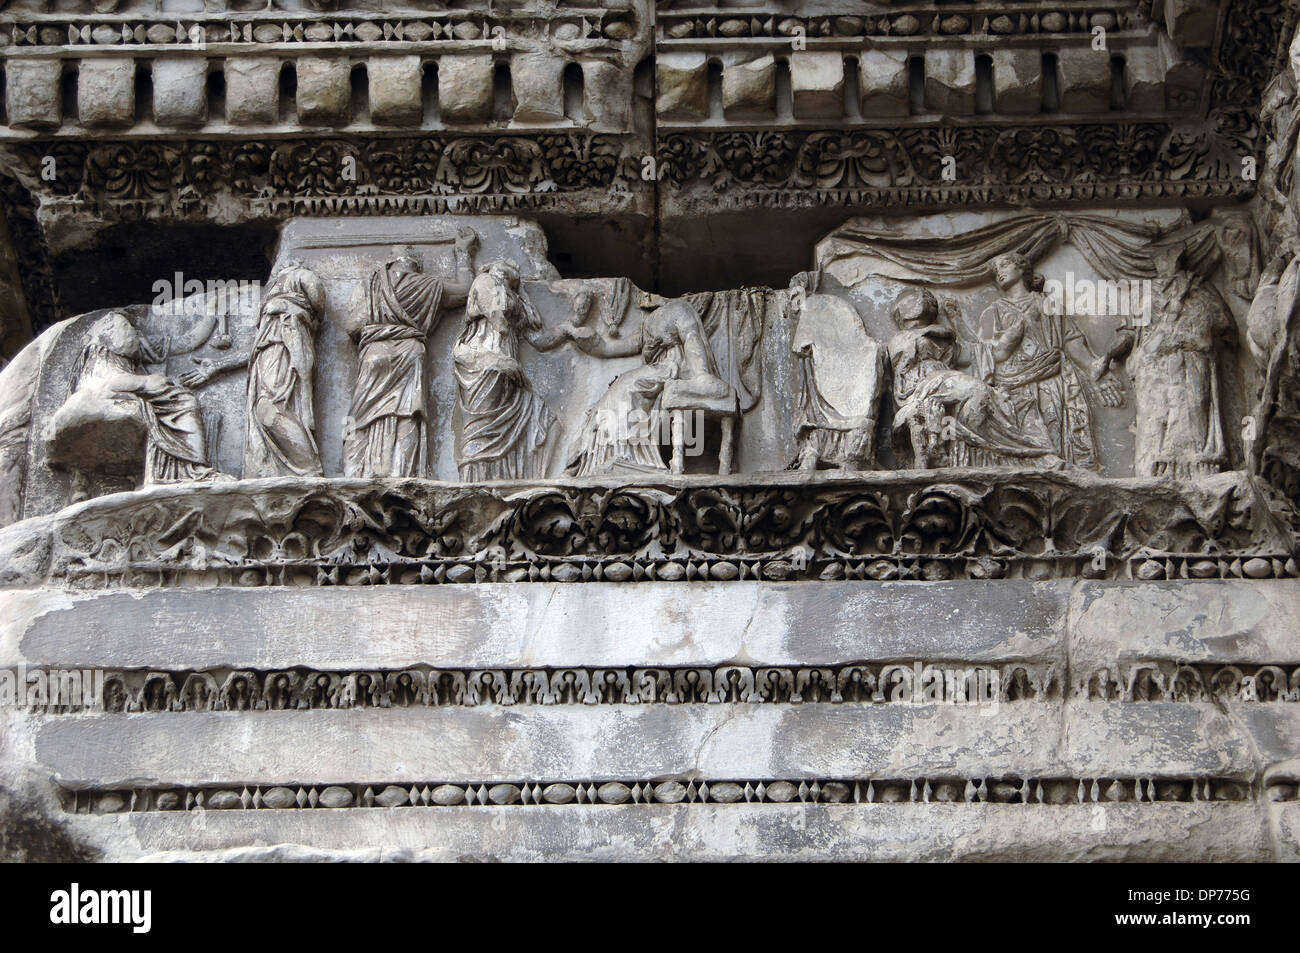 Italy. Rome. Forum of Nerva or Transitorium. The Colonnacce.  Entablature with frieze showing scenes of Myth of Arachne. - Stock Image